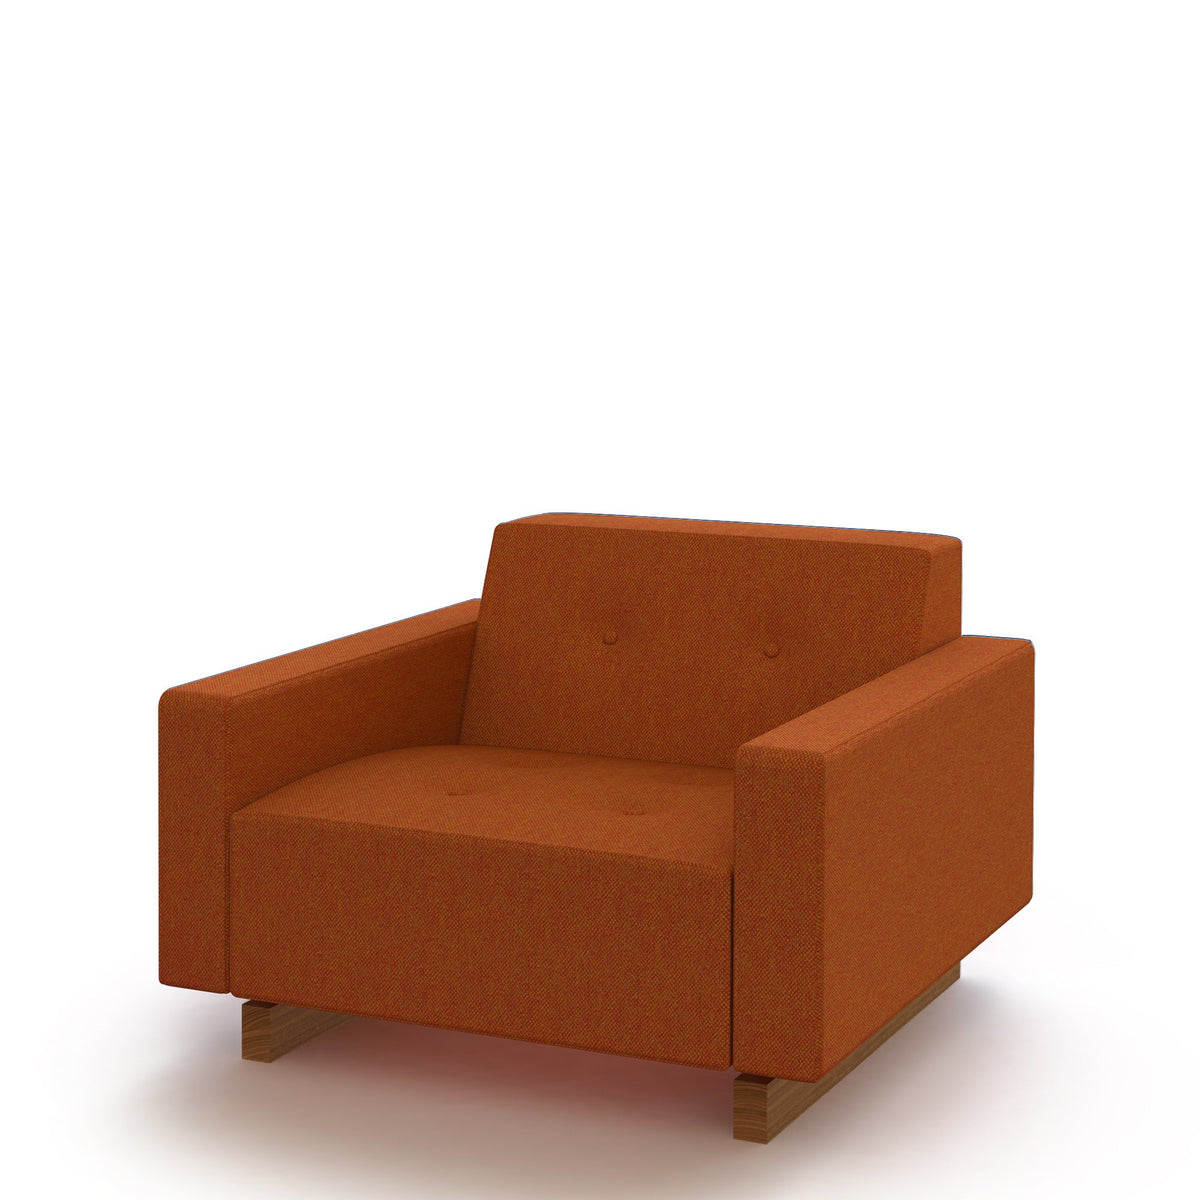 Hitch Mylius Office HM46 Leyton Abbey Armchair